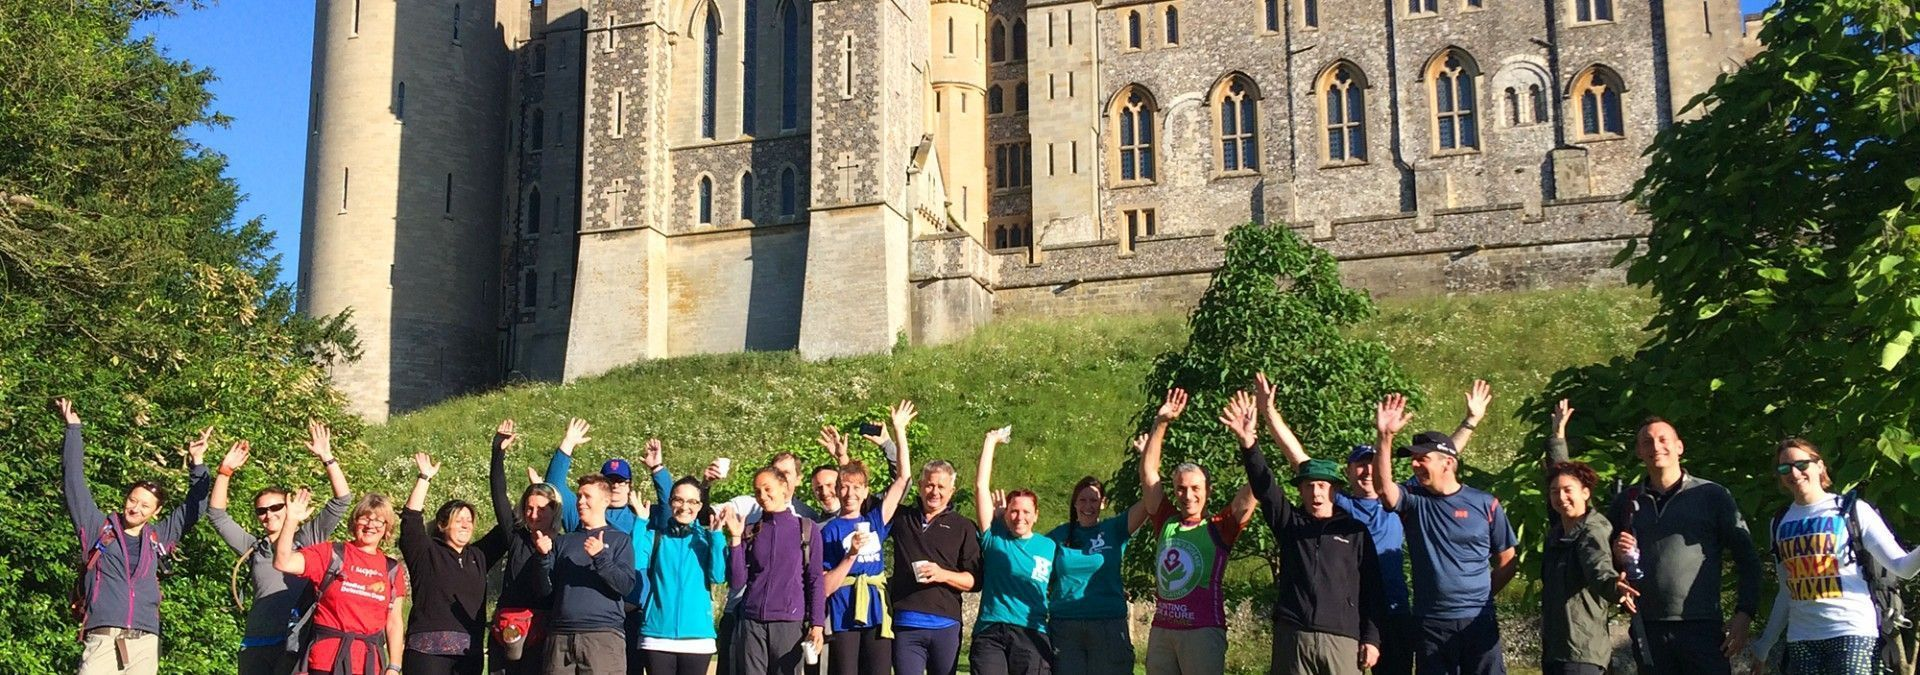 Arundel_Castle_South_Downs_Challenge_start_line.jpg